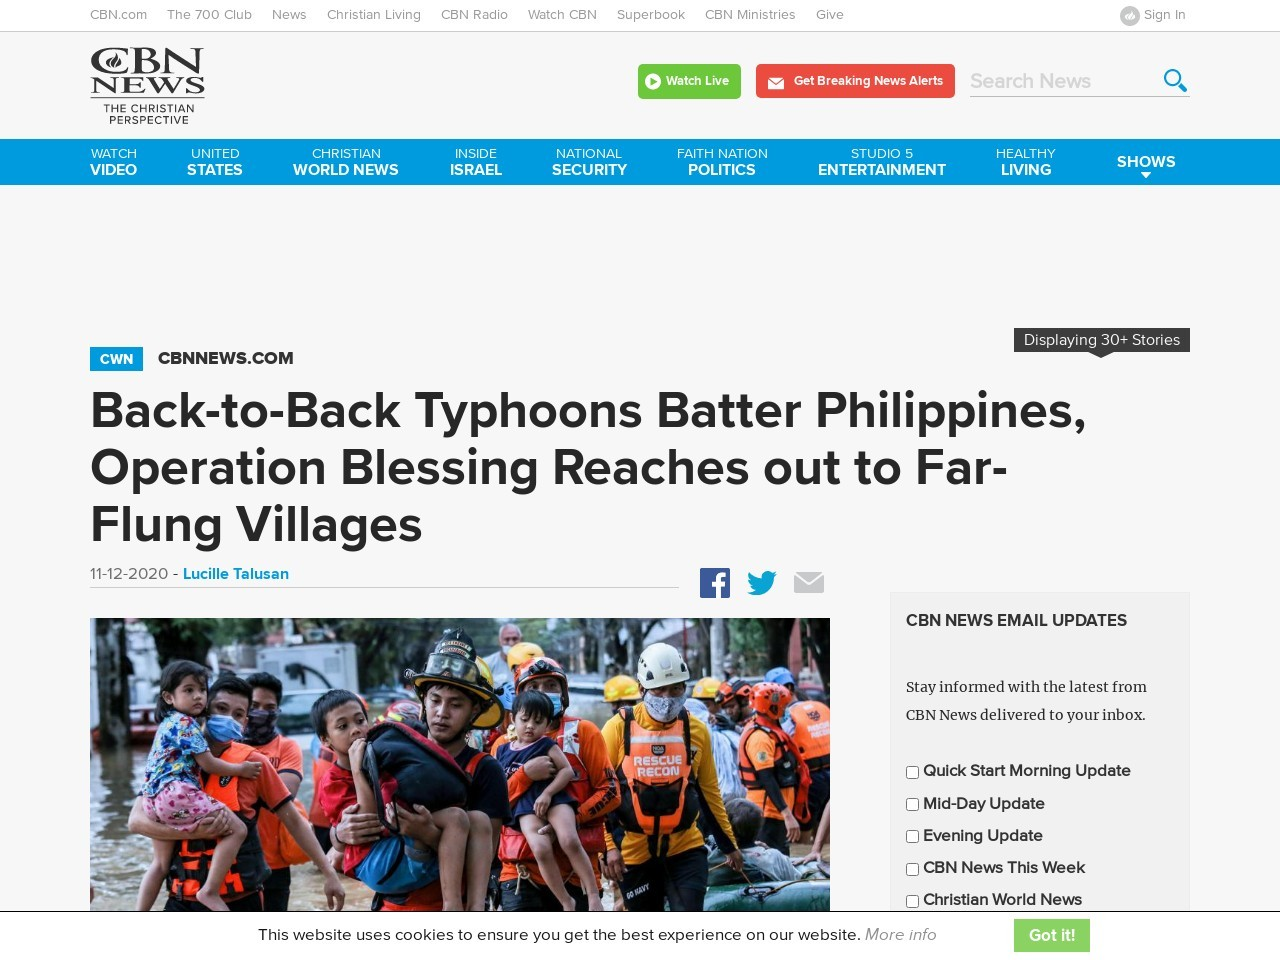 Back-to-Back Typhoons Batter Philippines, Operation Blessing Reaches out to Far-Flung Villages